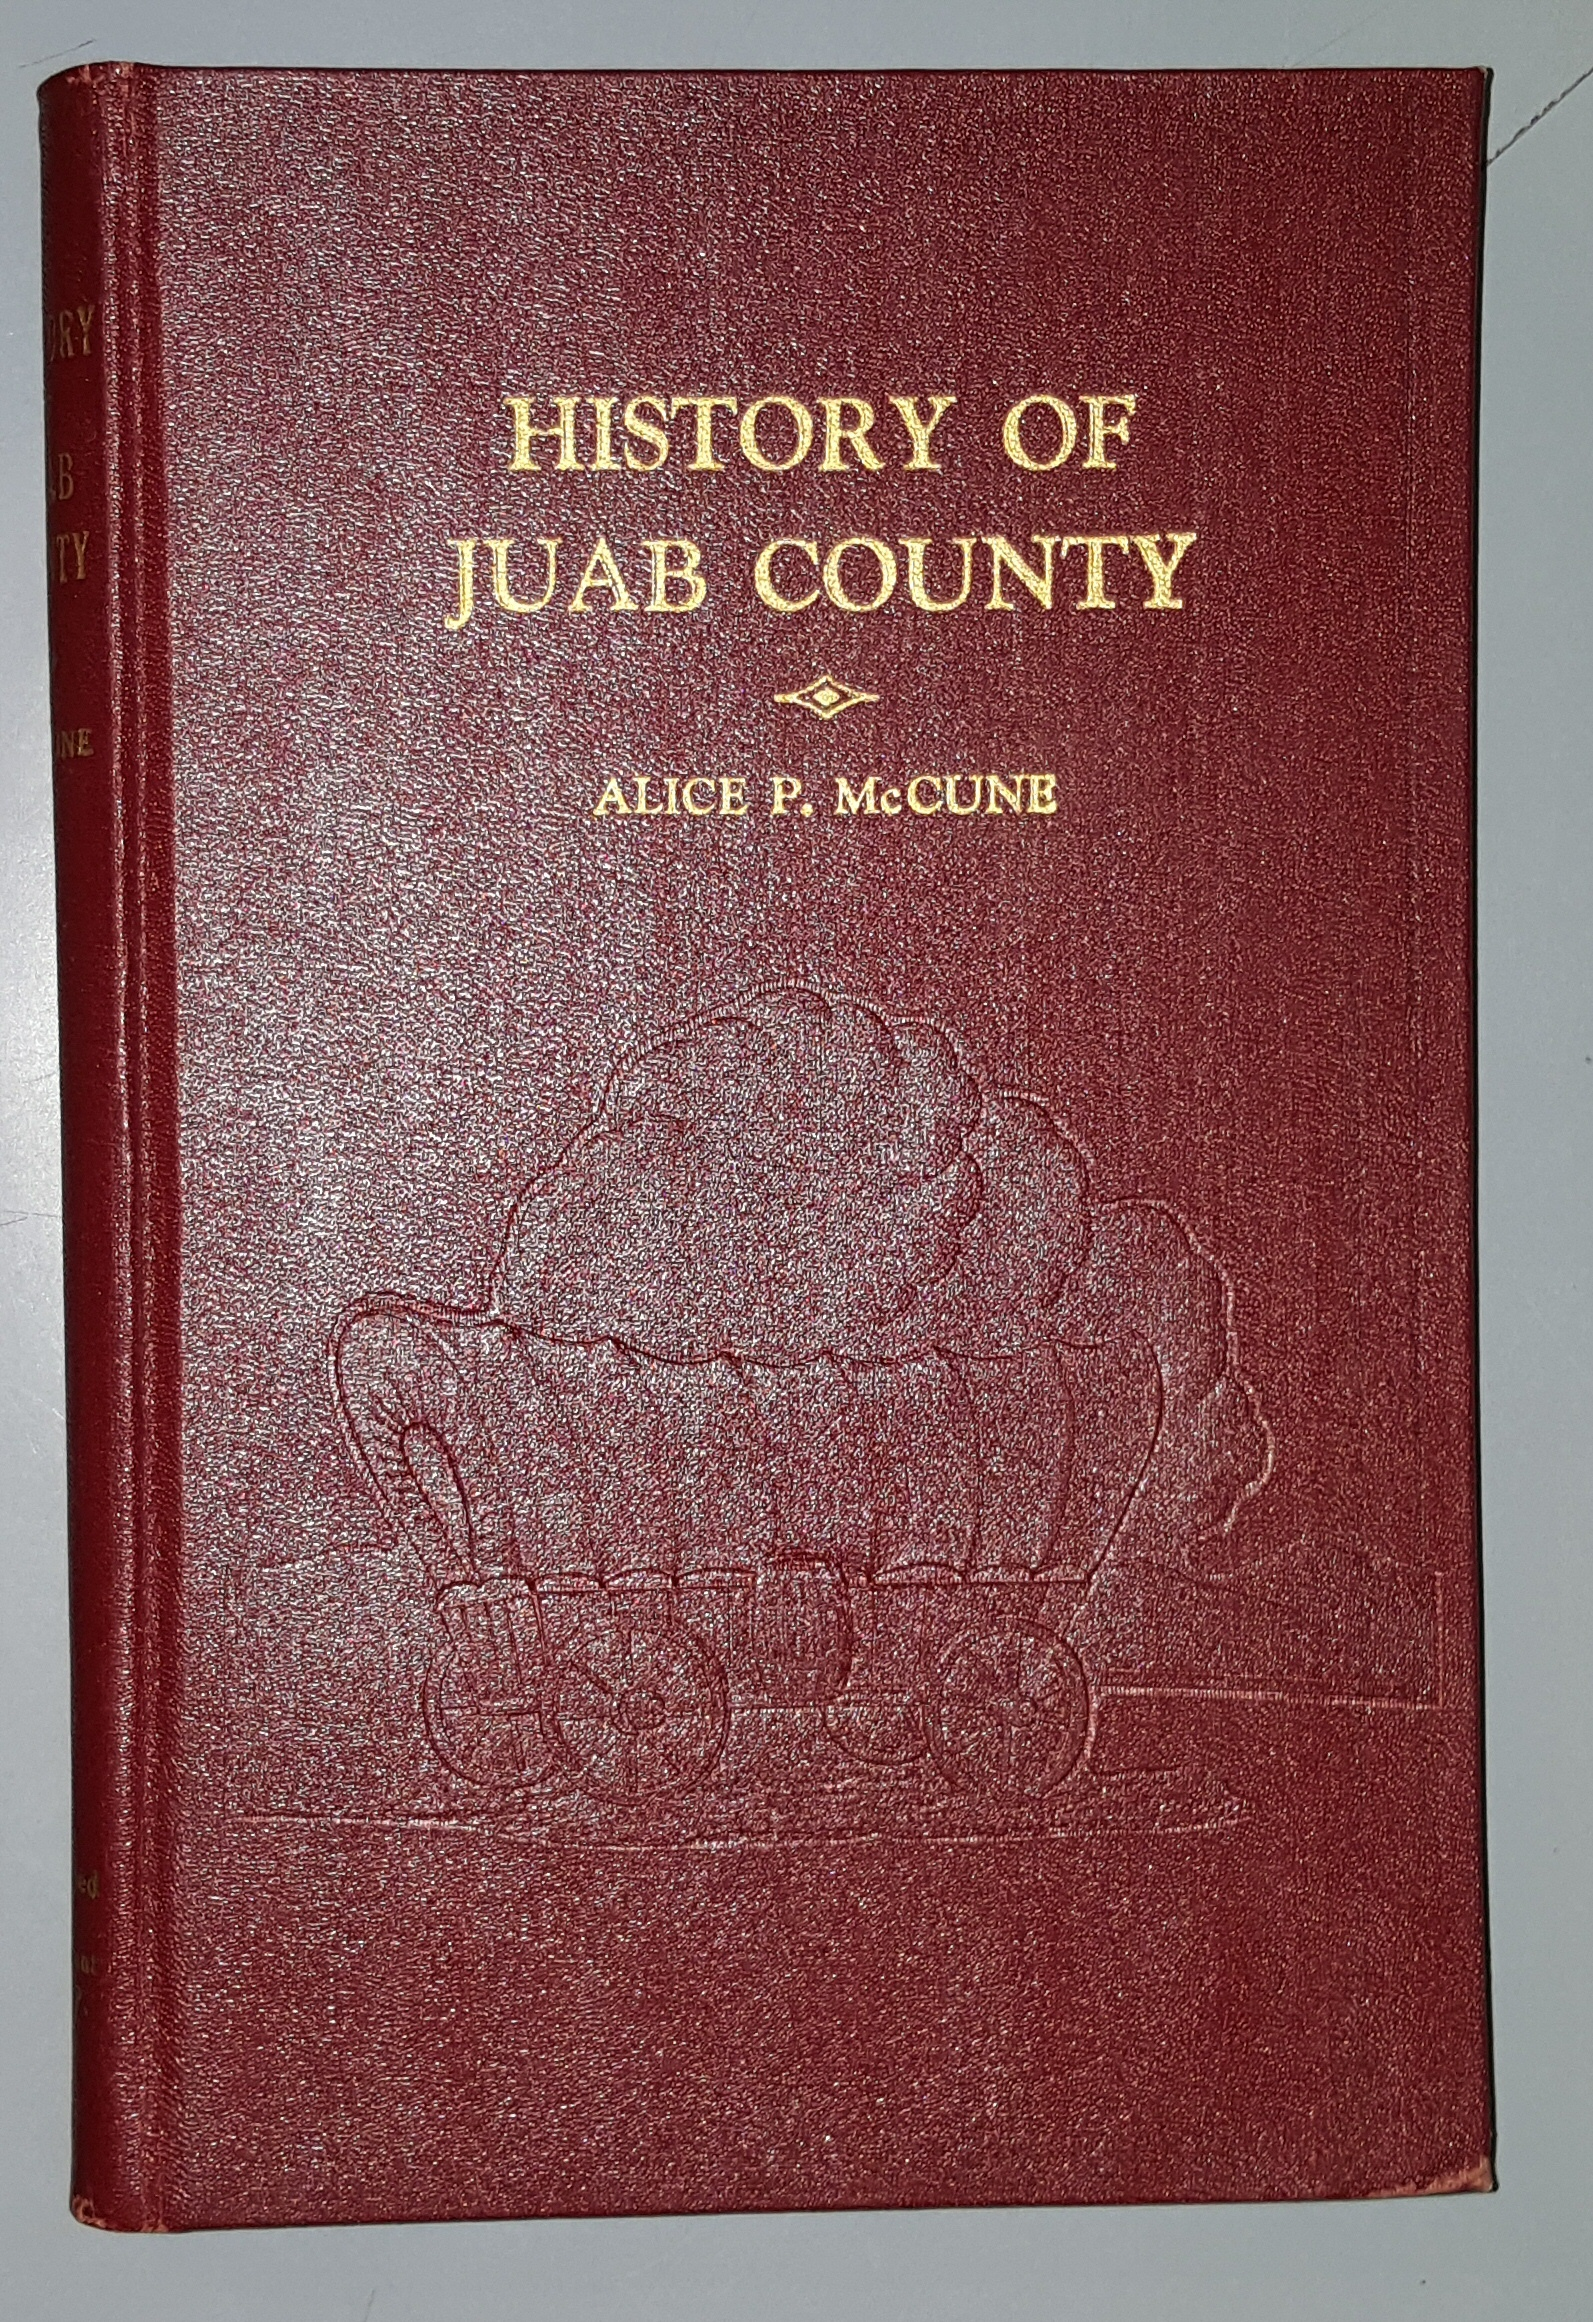 History of Juab County - A History Prepared for the Centennial of the Coming of the Pioneers to Utah 1847-1947, McCune, Alice Paxman